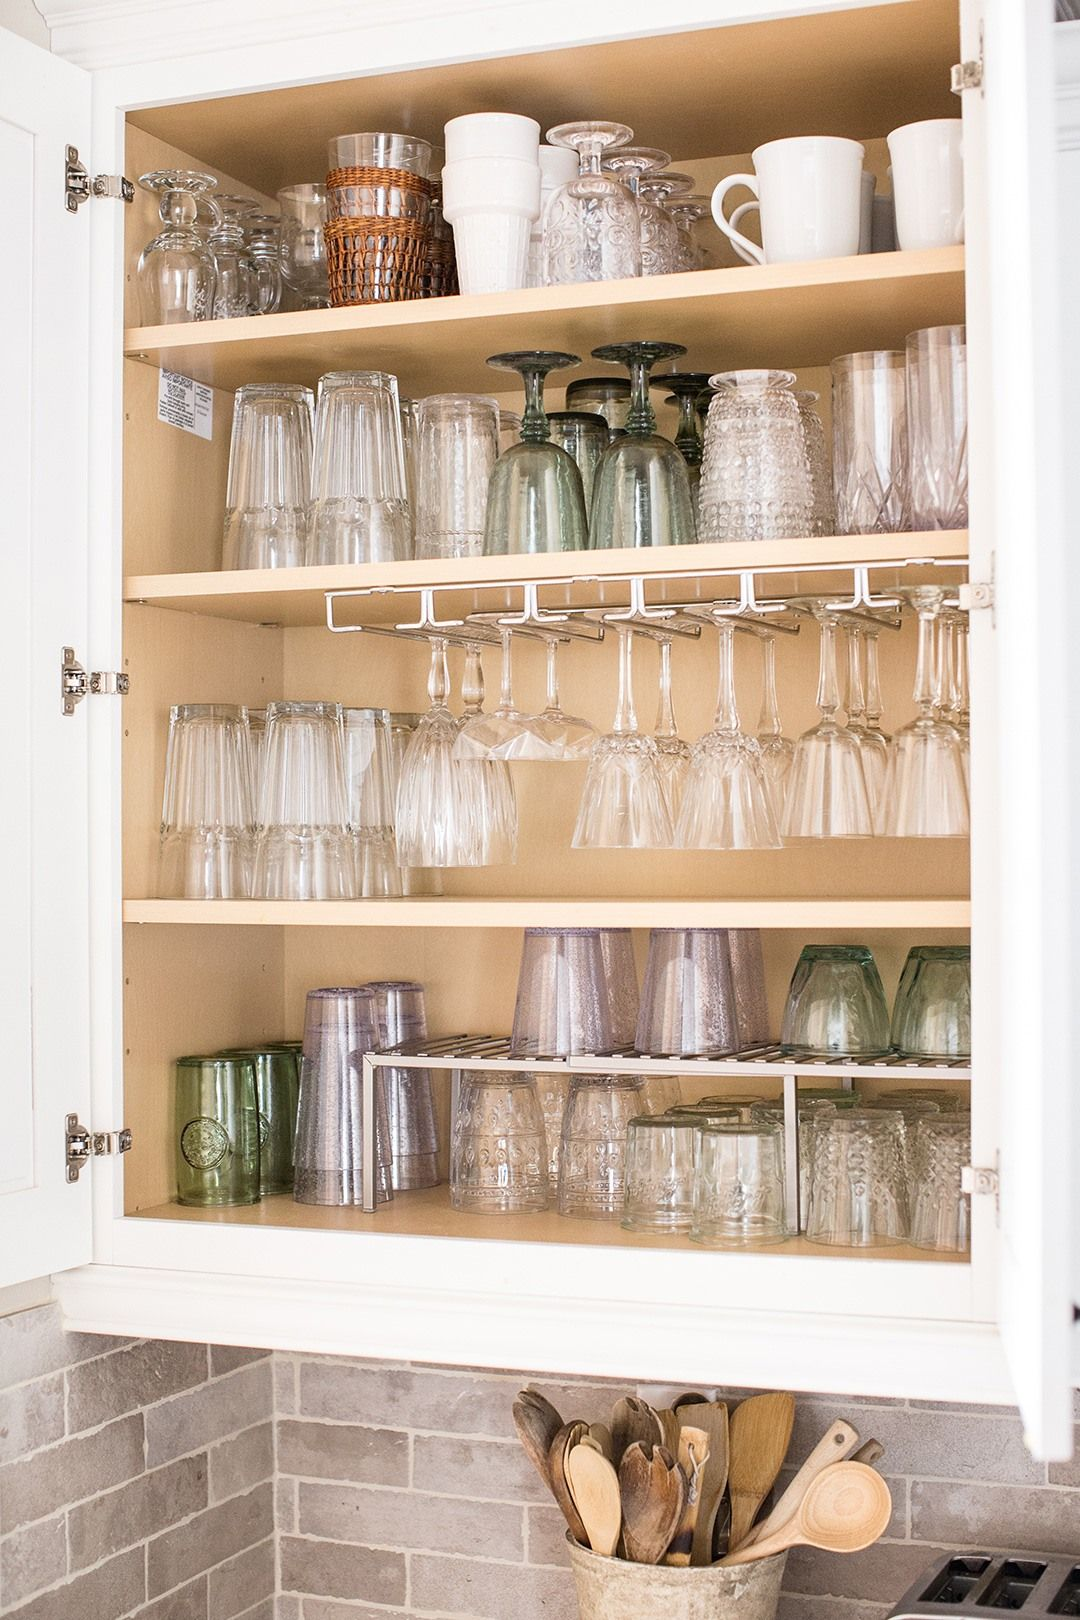 7 Kitchen Cabinet Organization Ideas To Refresh Your Space In 2020